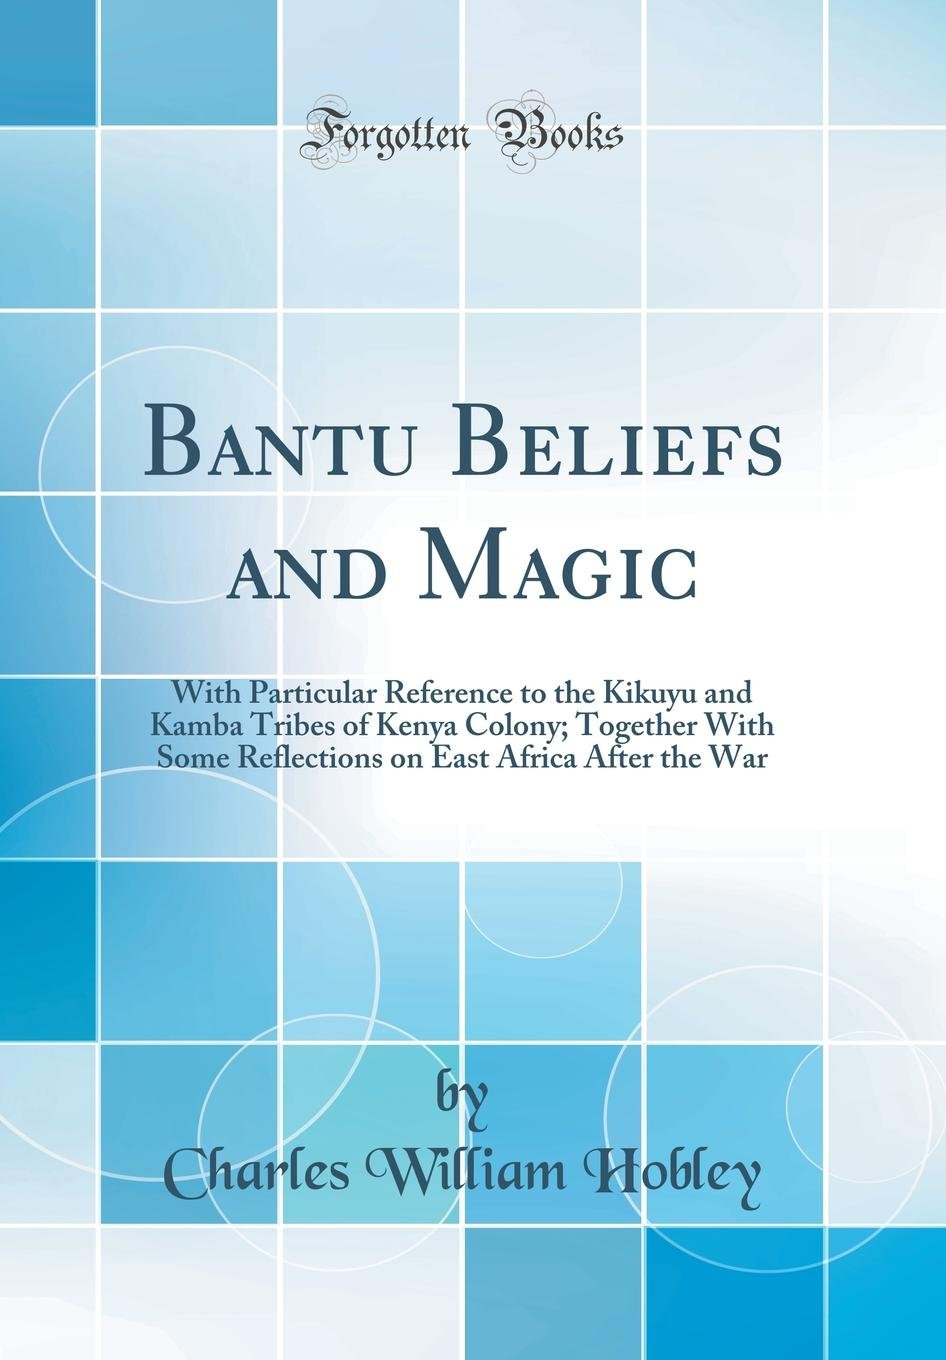 Download Bantu Beliefs and Magic: With Particular Reference to the Kikuyu and Kamba Tribes of Kenya Colony; Together with Some Reflections on East Africa After the War (Classic Reprint) pdf